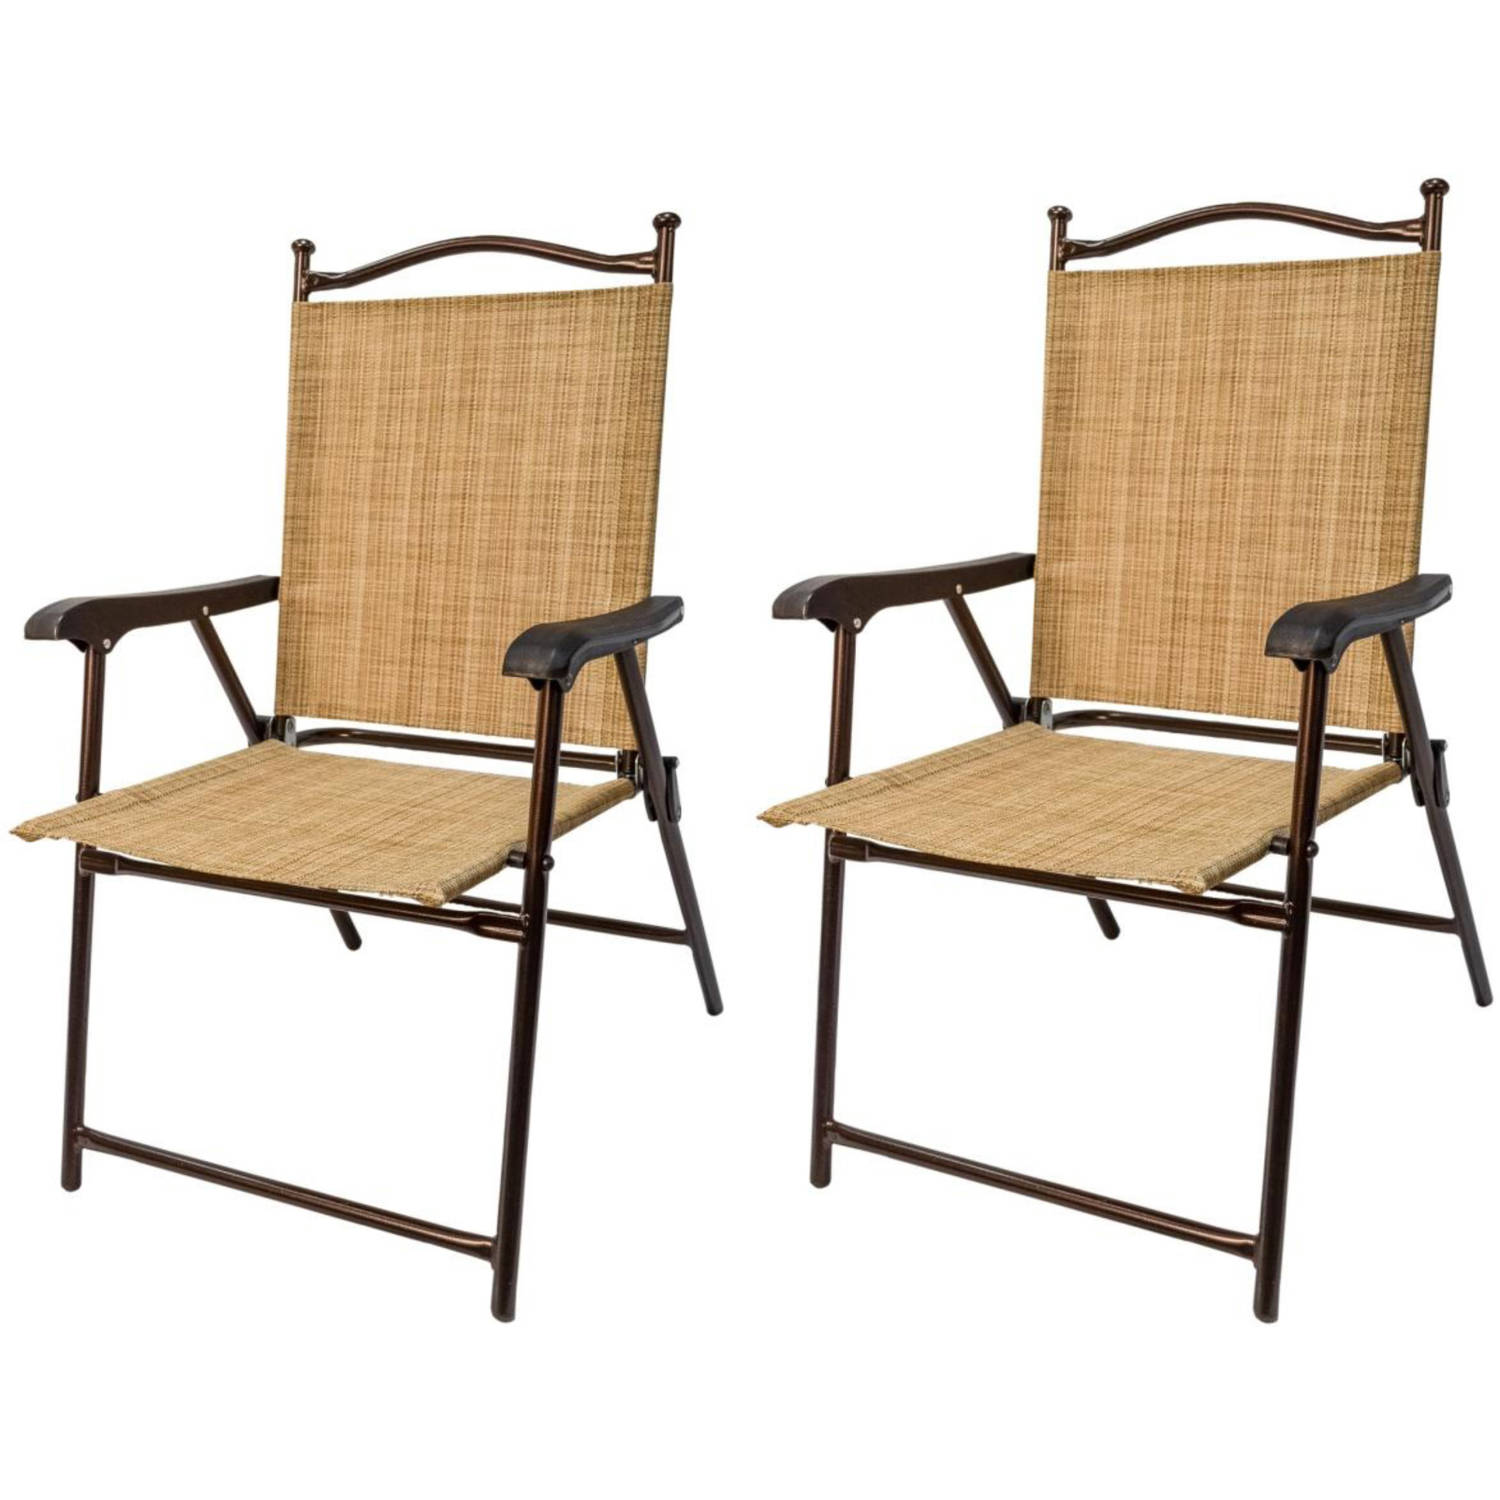 Attractive Sling Black Outdoor Chairs Bamboo Set Of 2 Walmartcom